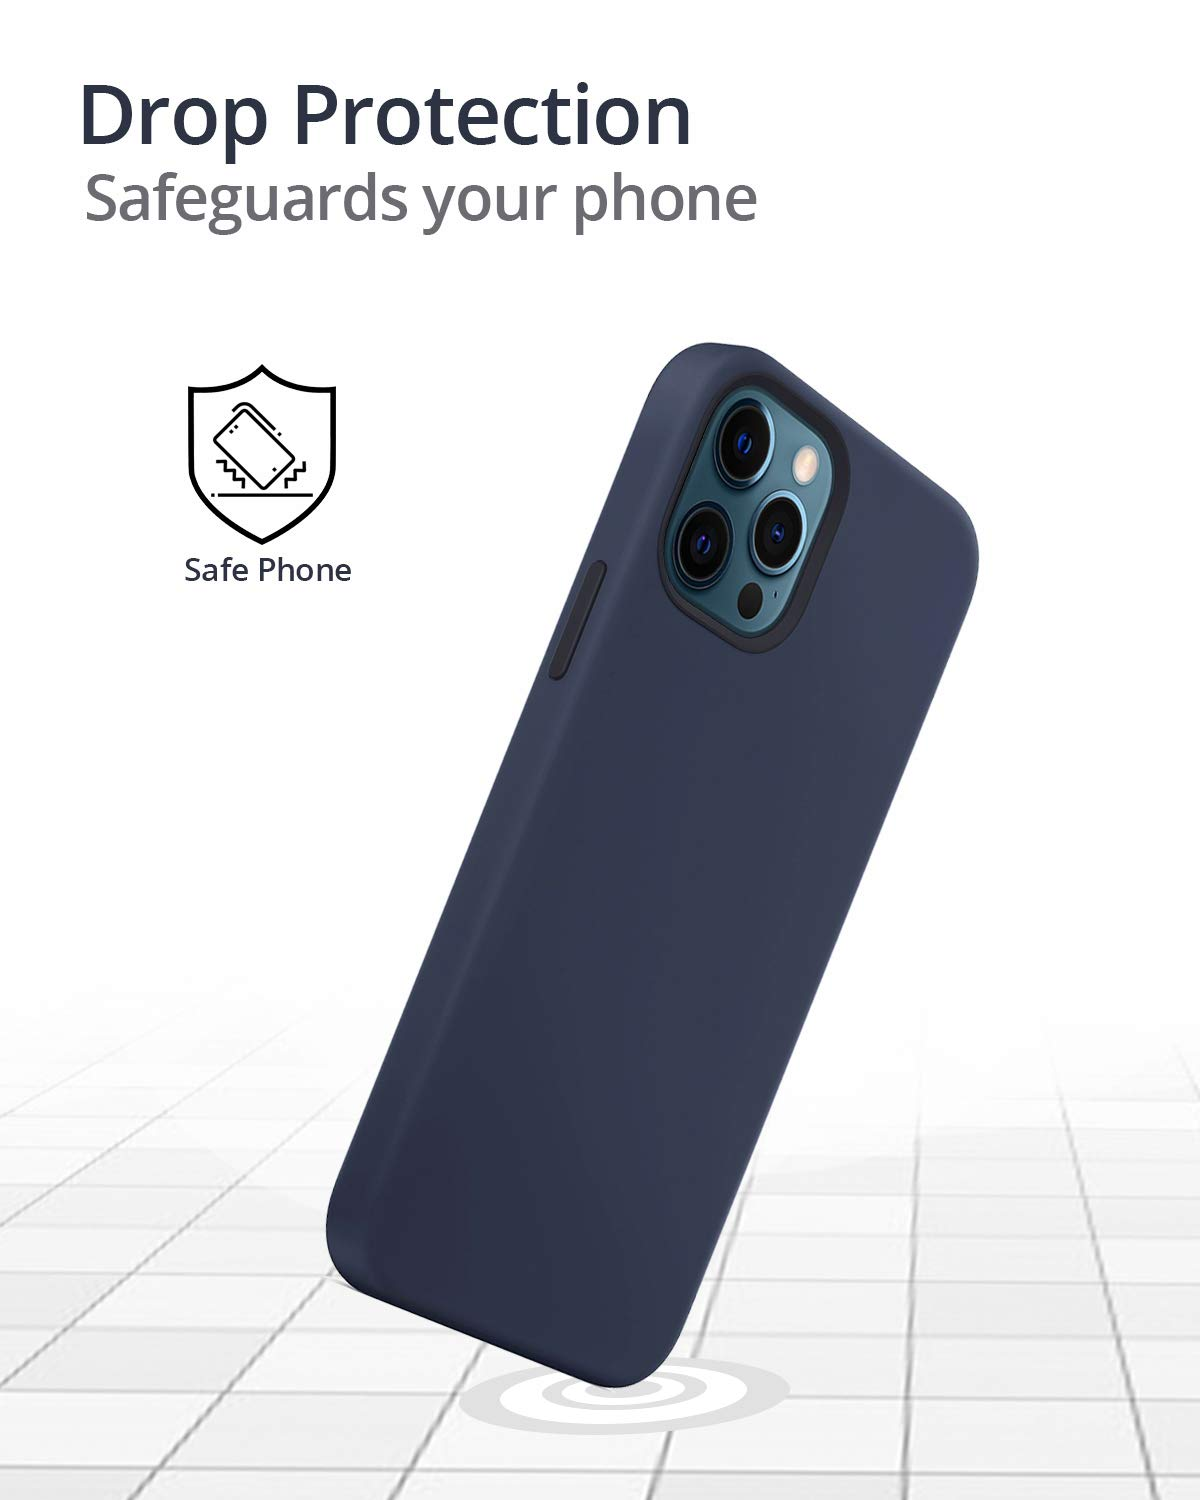 RAEGR iPhone 12 Pro Max 5G MagFix Magnetic Case, Supports Mag-Safe Wireless Charging 6.7